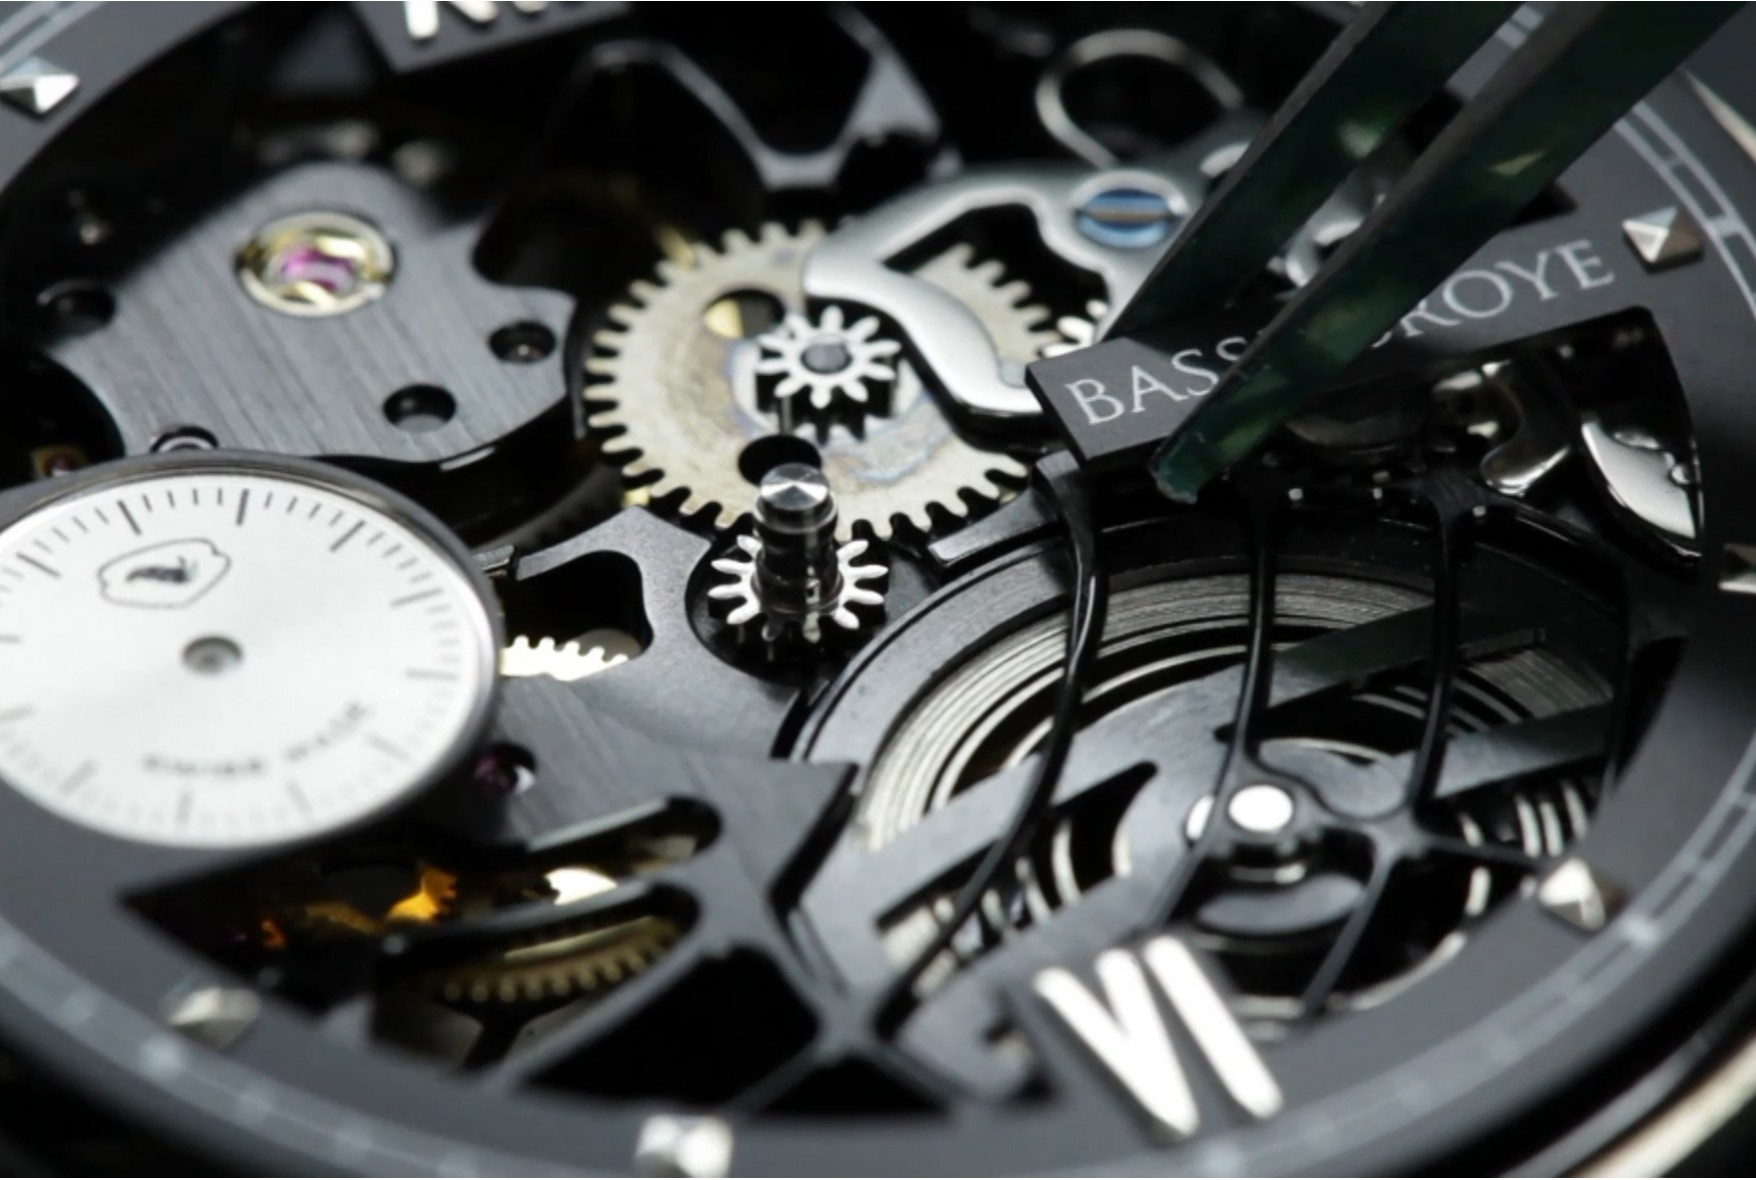 How does a mechanical watch work?